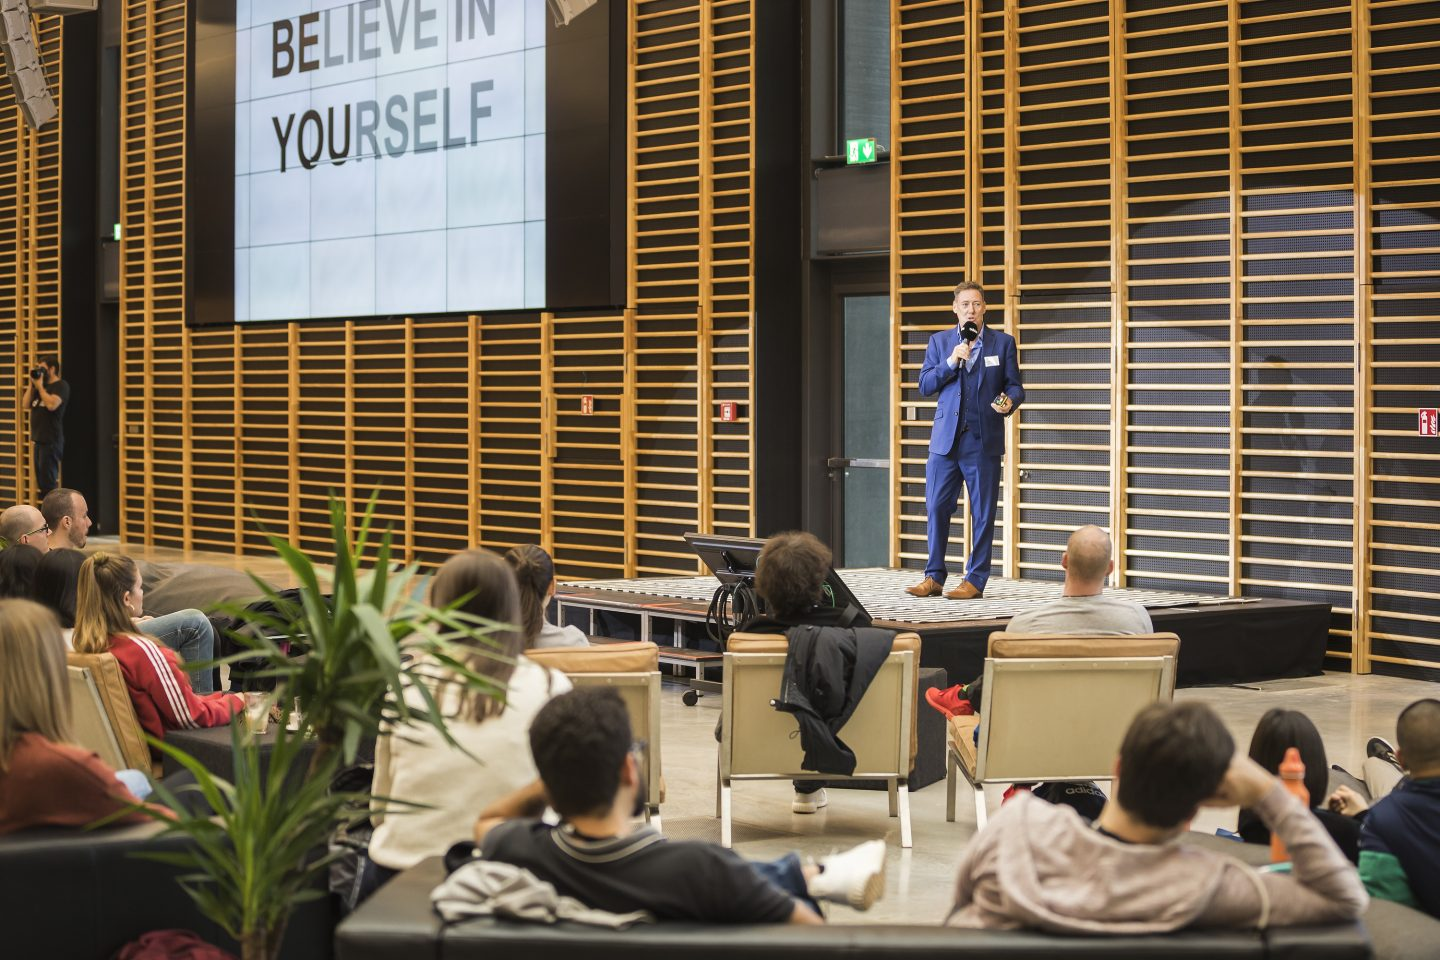 A man standing on stage and giving a speech at the adidas HQ. Nick Moloney, career, sailor, success, mindset, motivation, preparation, GamePlan A